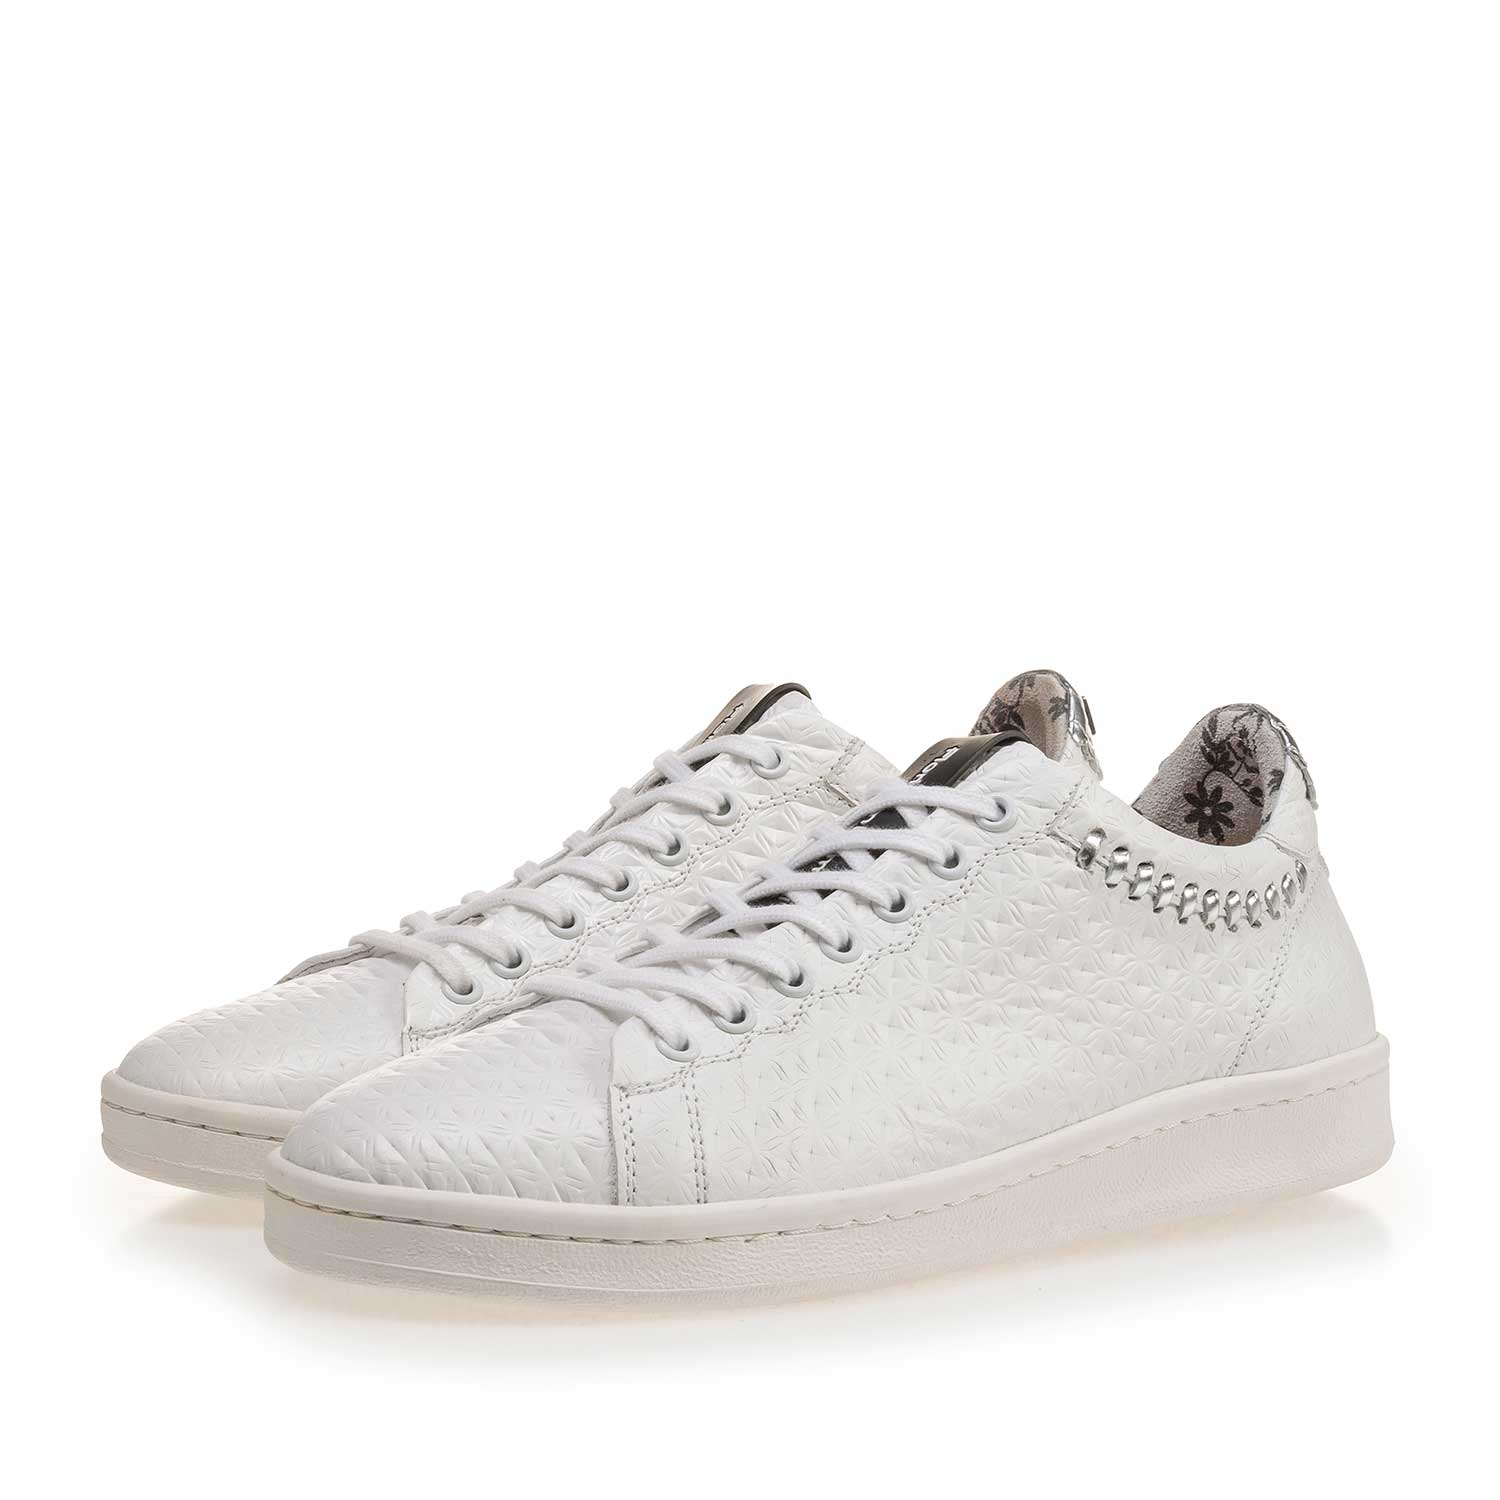 85251/02 - White patterned leather sneaker